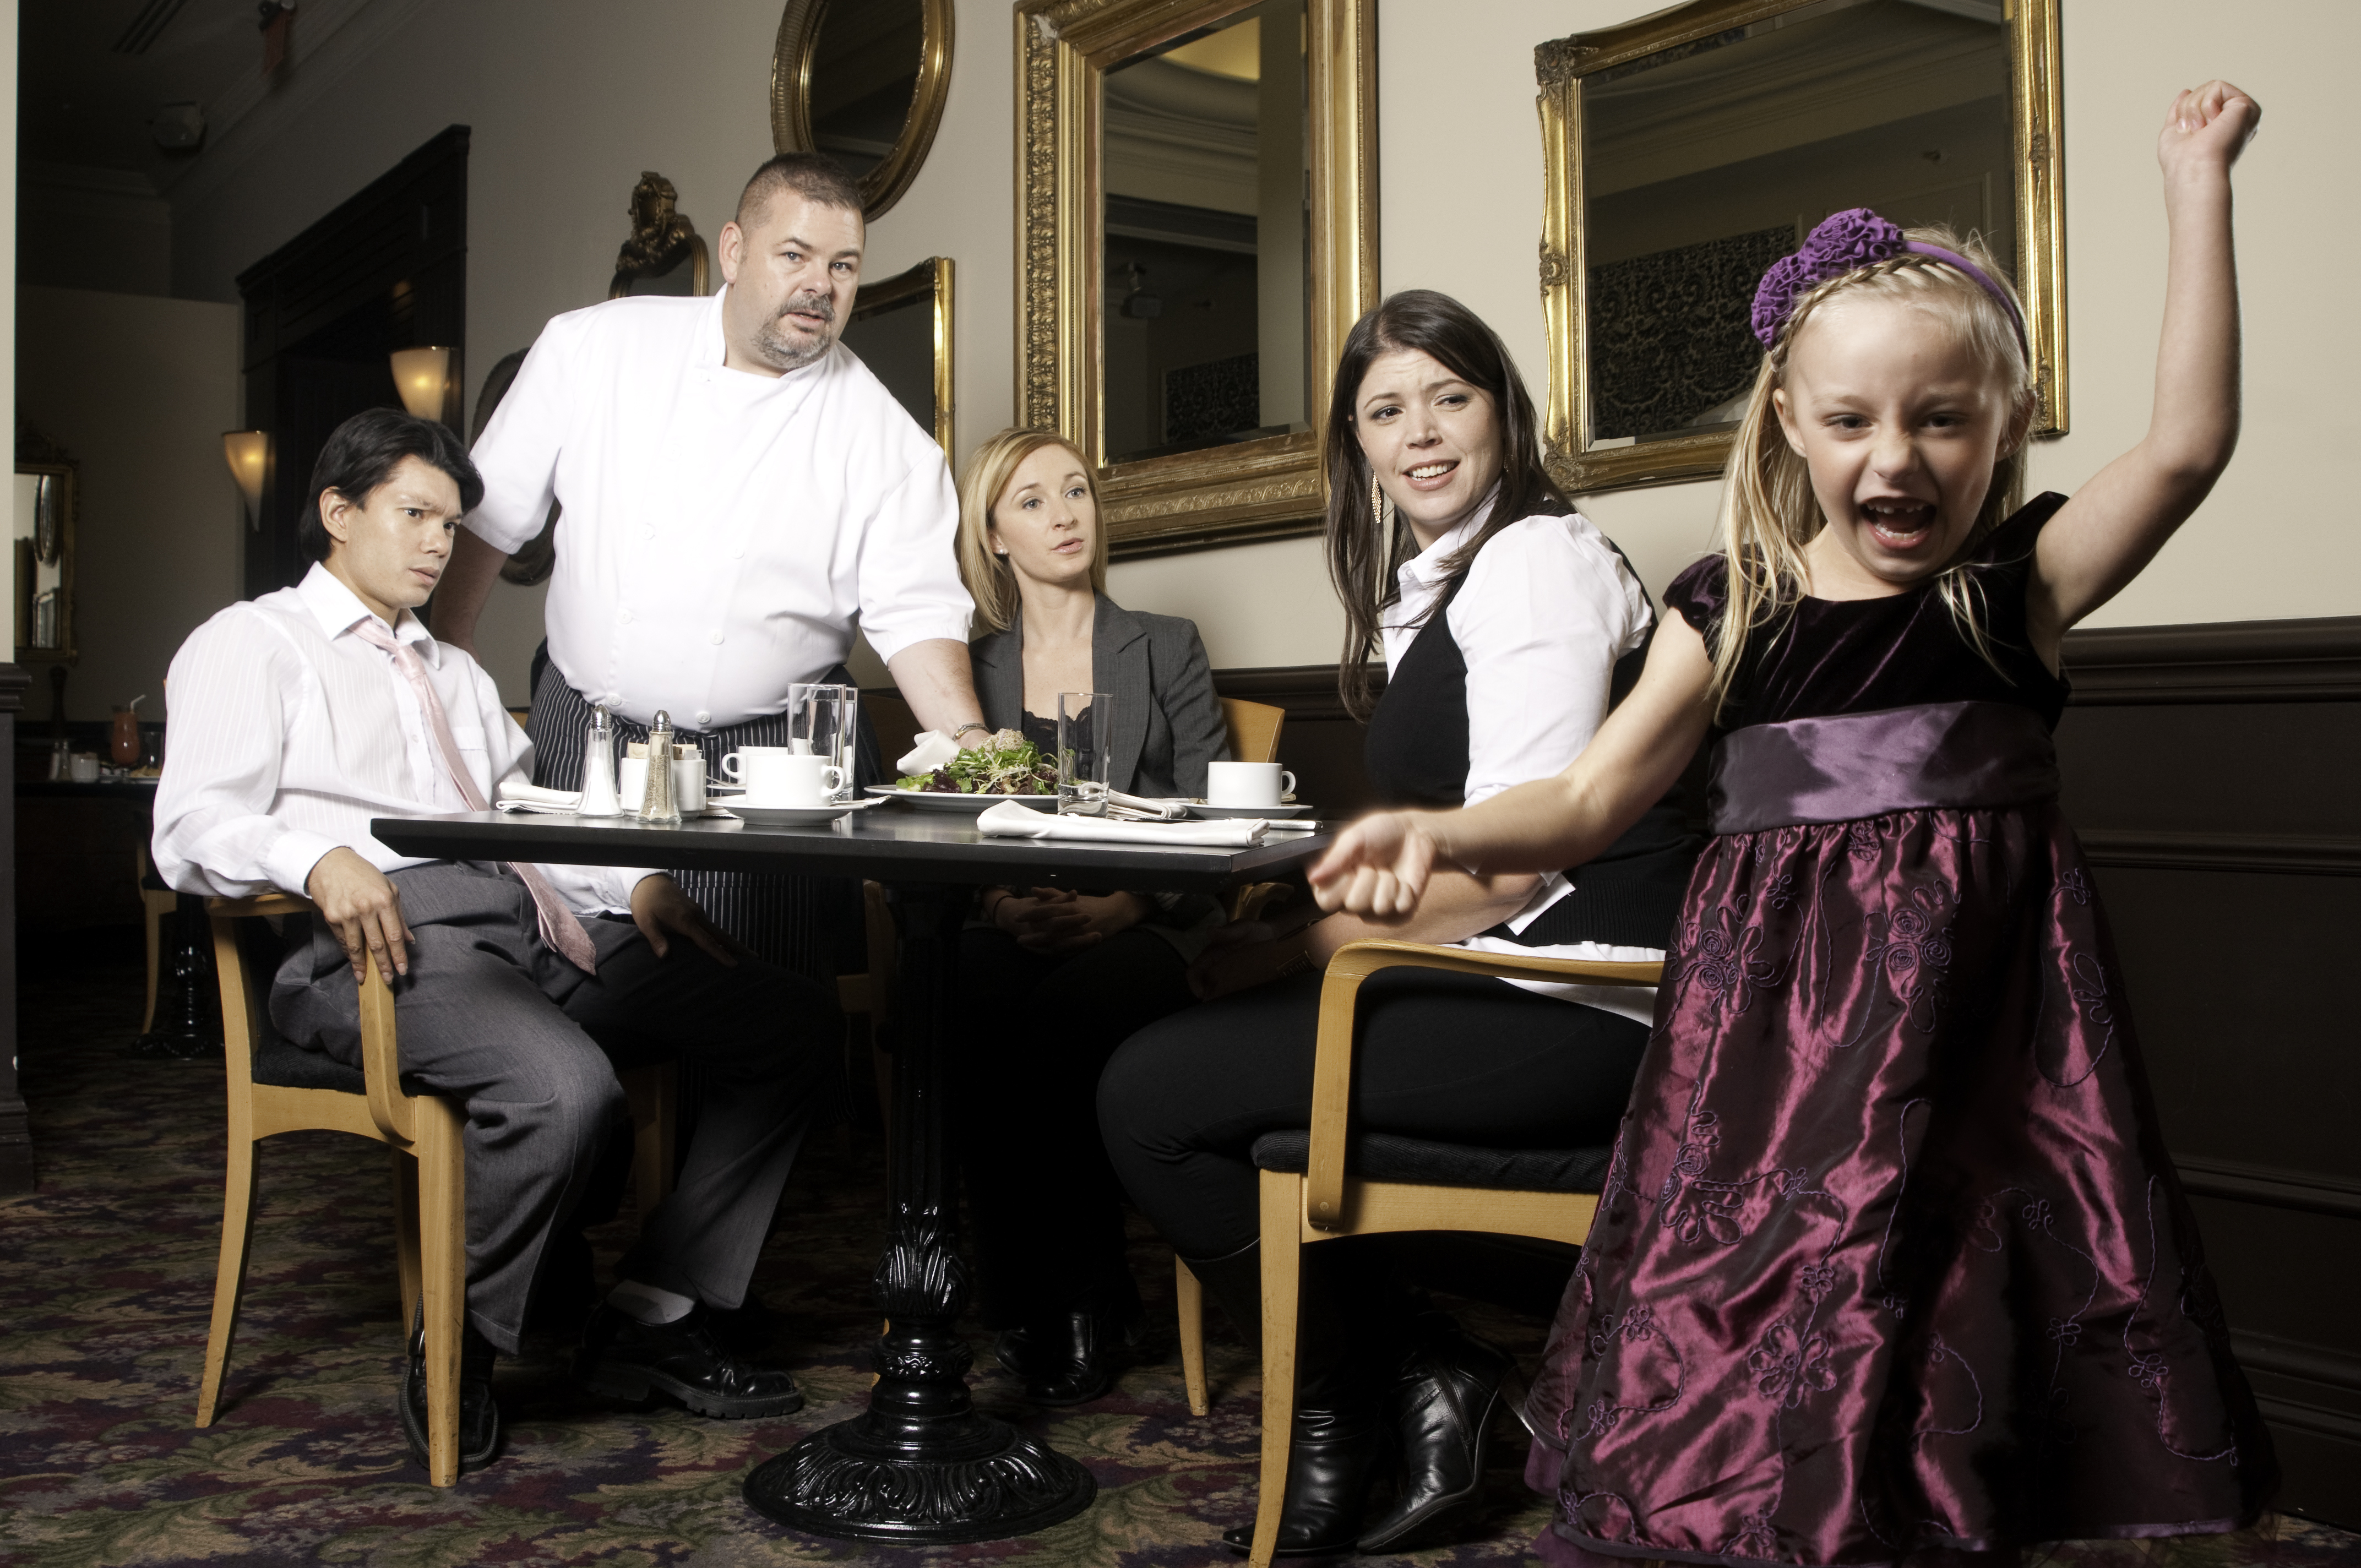 Ask Ms. Plaid: Frustrated with Unruly Children While Dining